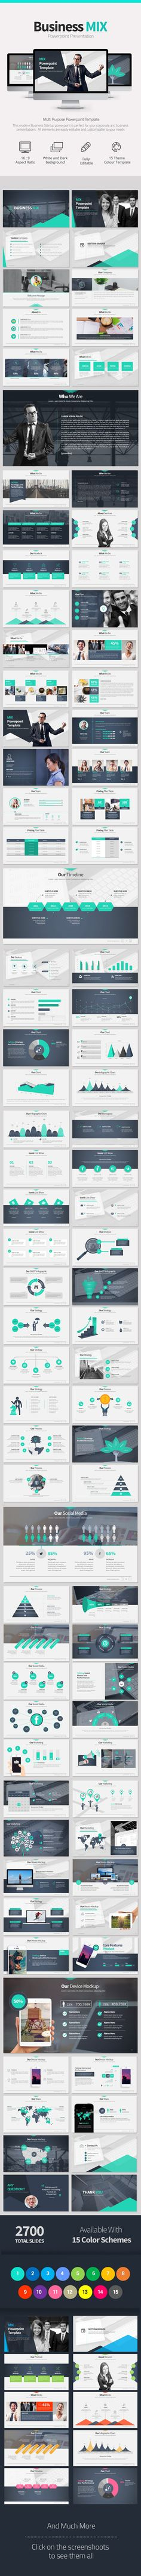 Business Mix PowerpointPresentation - Creative PowerPoint Templates